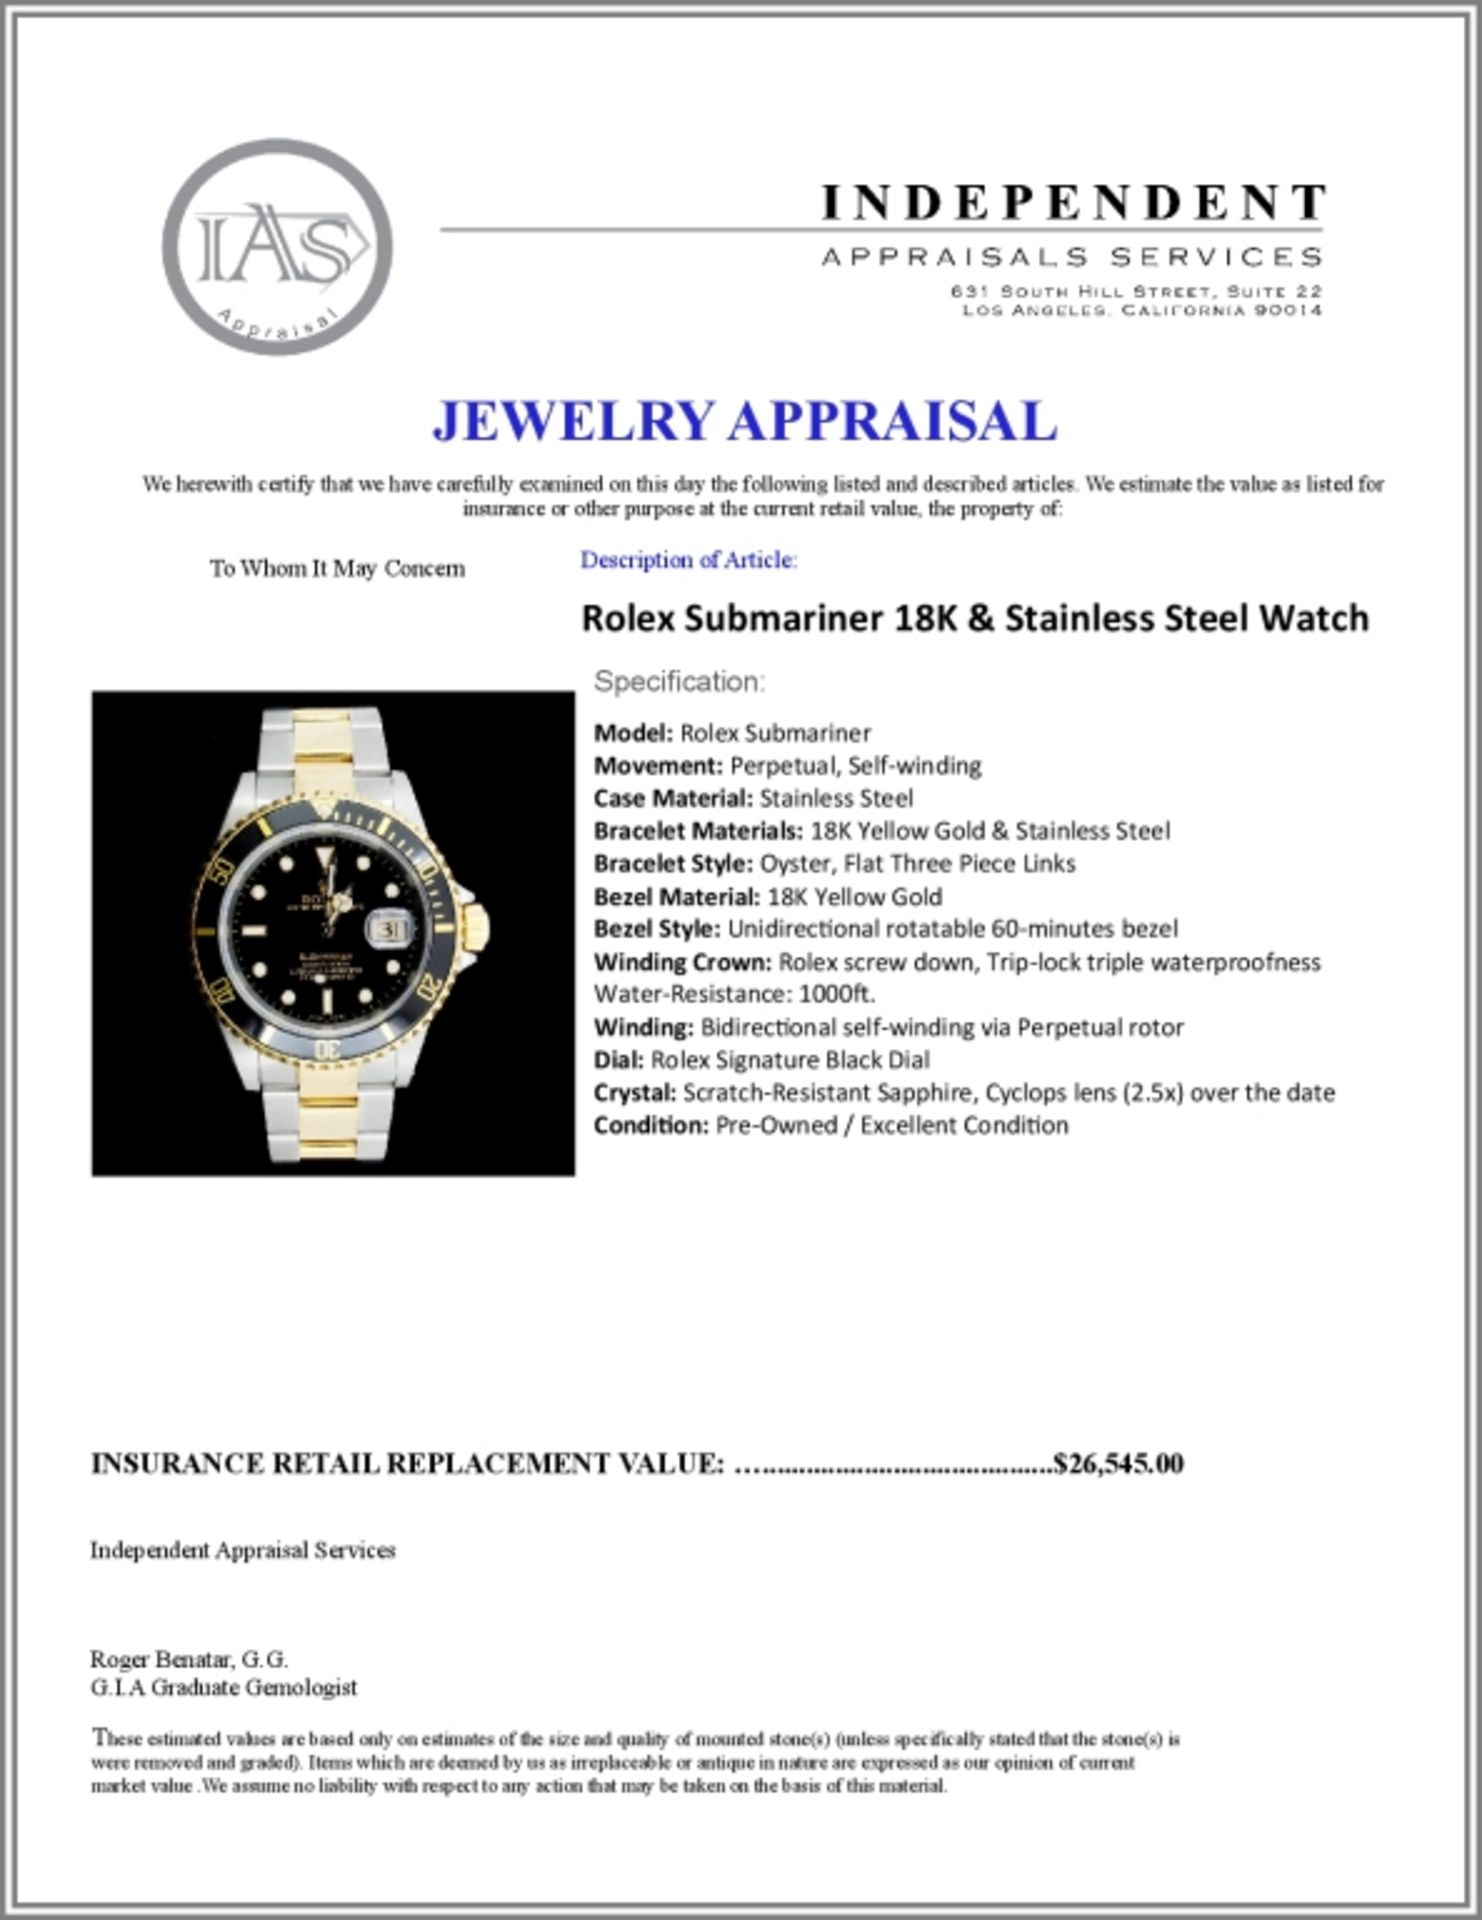 Rolex Submariner 18K & Stainless Steel 40MM Watch - Image 5 of 5